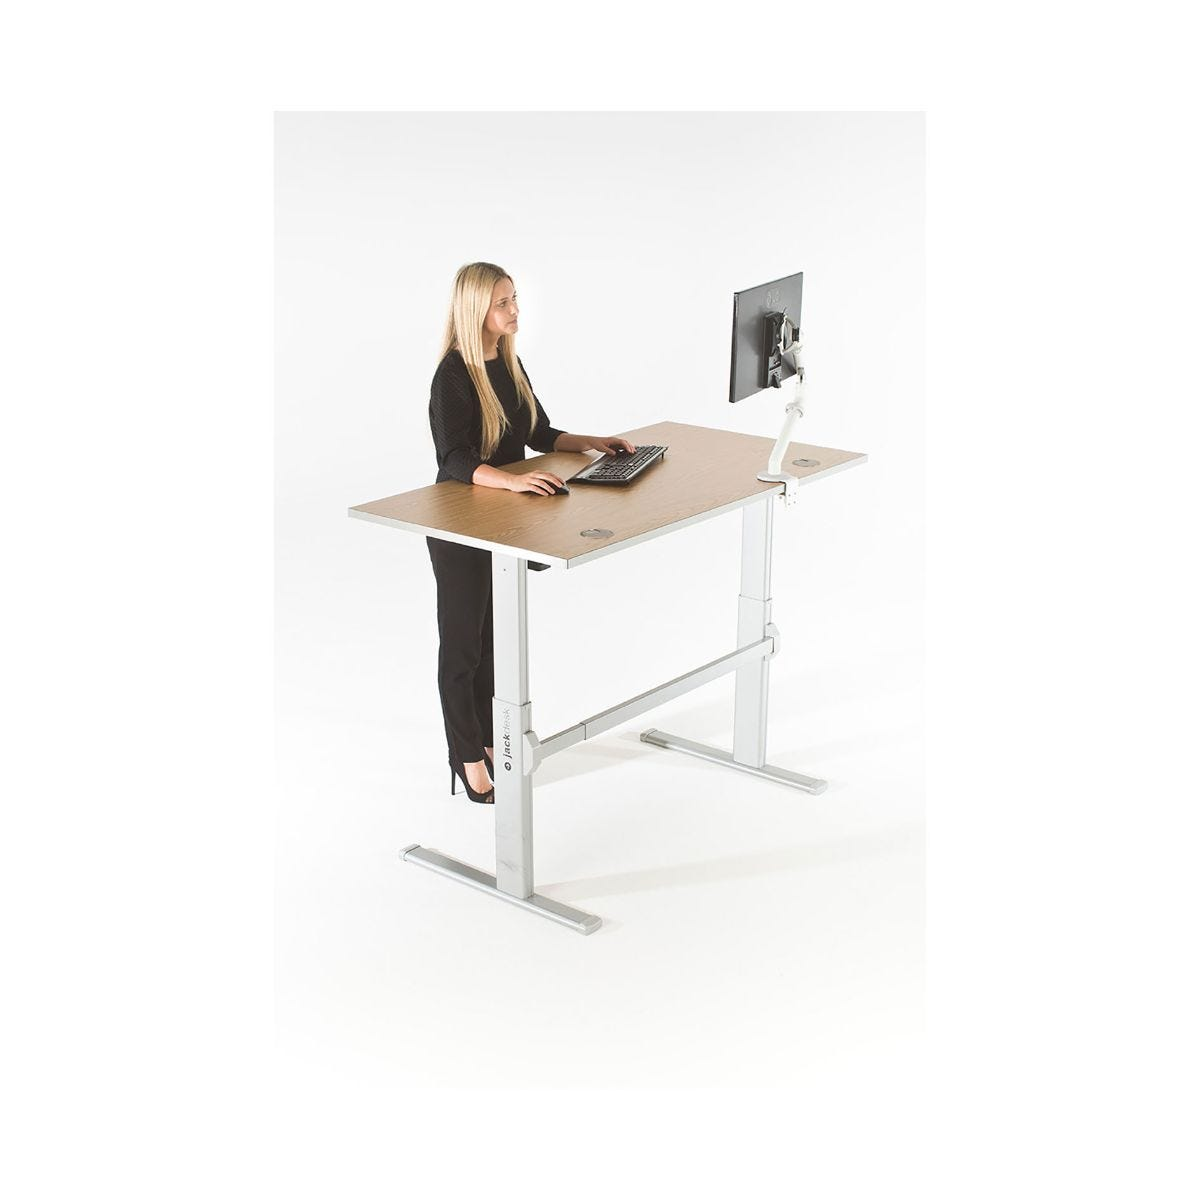 Big Jack Electrical Standing Desk, White